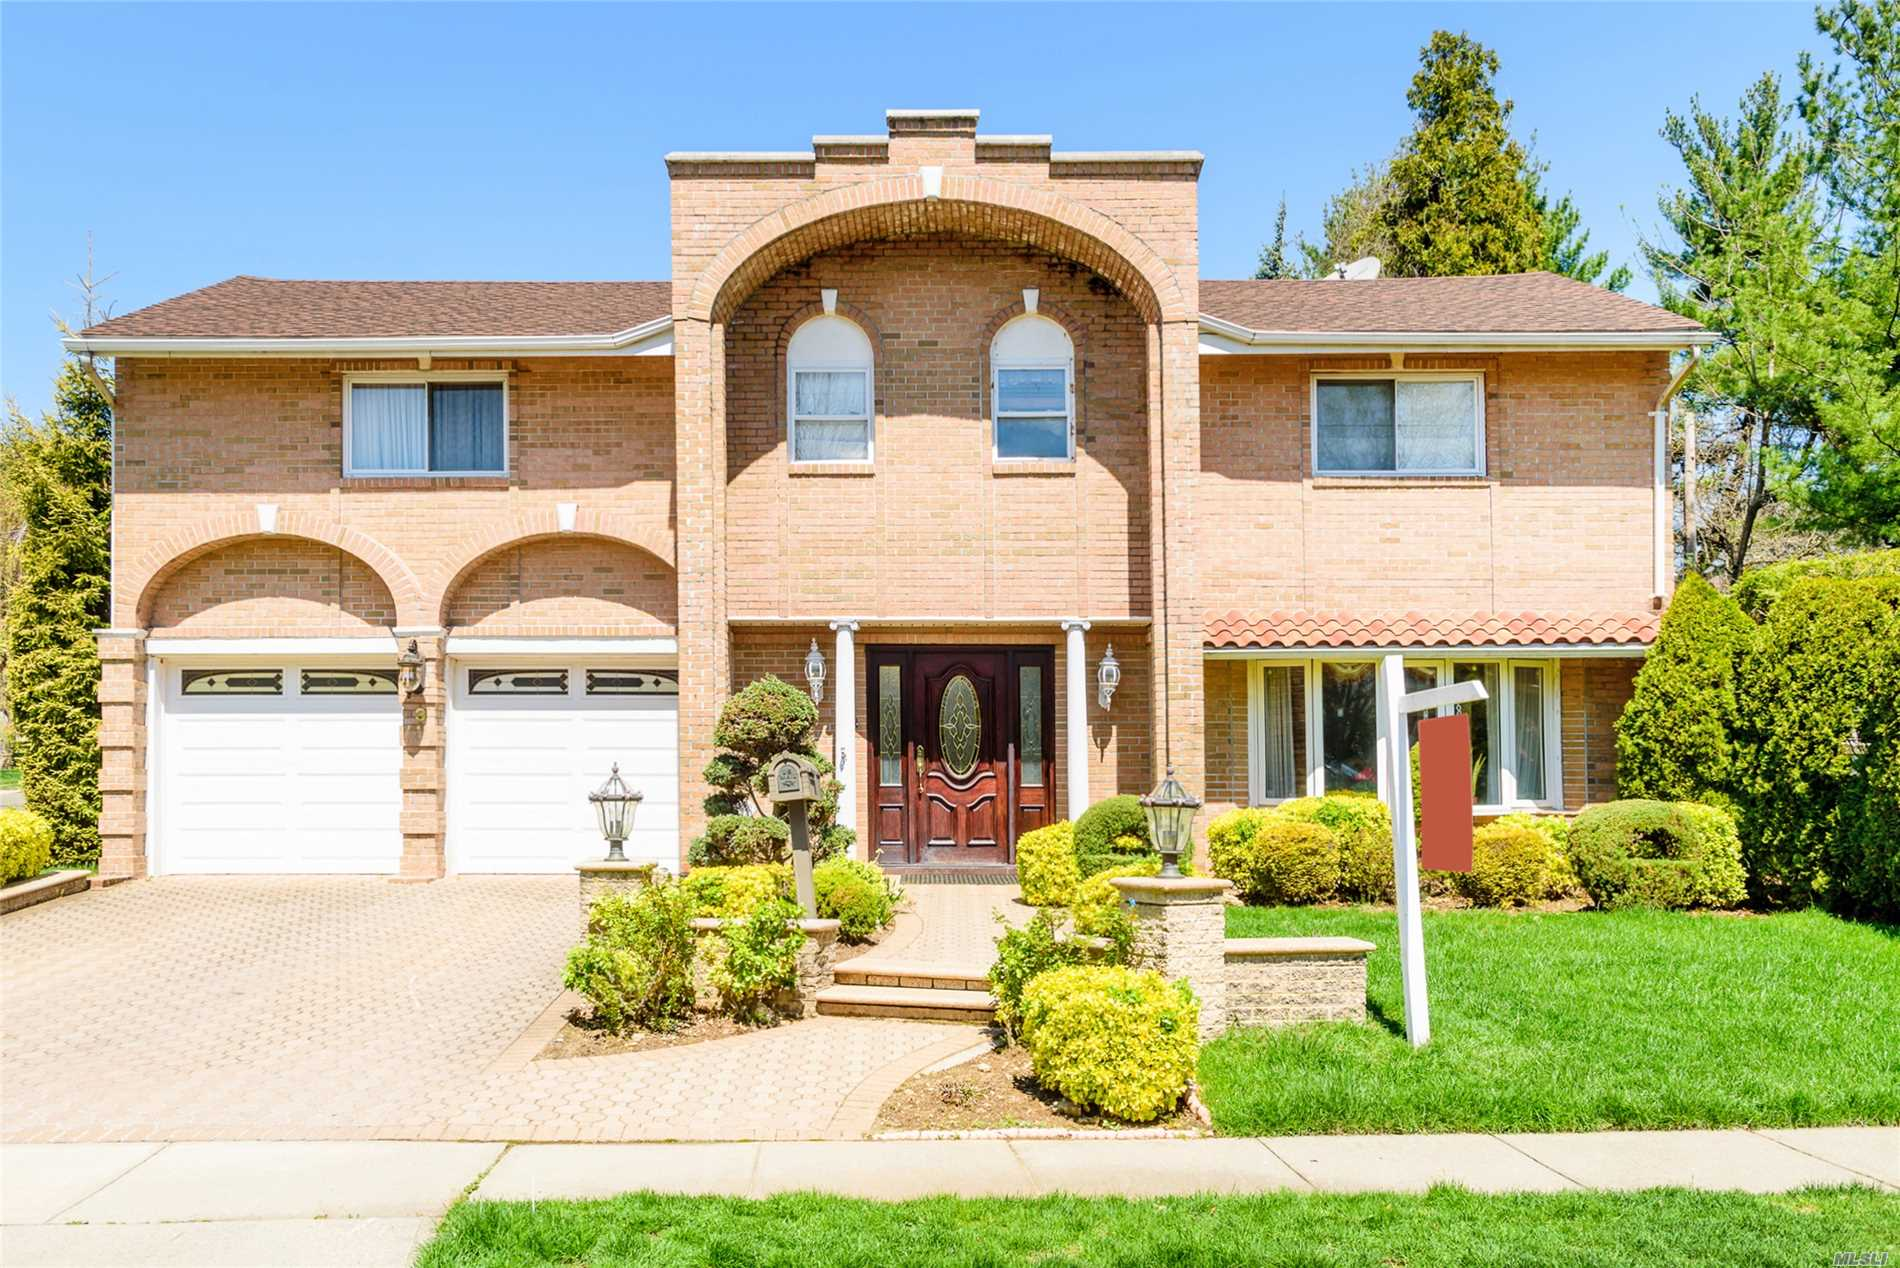 All BRICK extra large 5BR/2.5BTH Splanch located in the HERRICKS SD. House is in immaculate condition and features gleaming hardwood floors, update kit and baths, spacious rooms and a nice open layout.